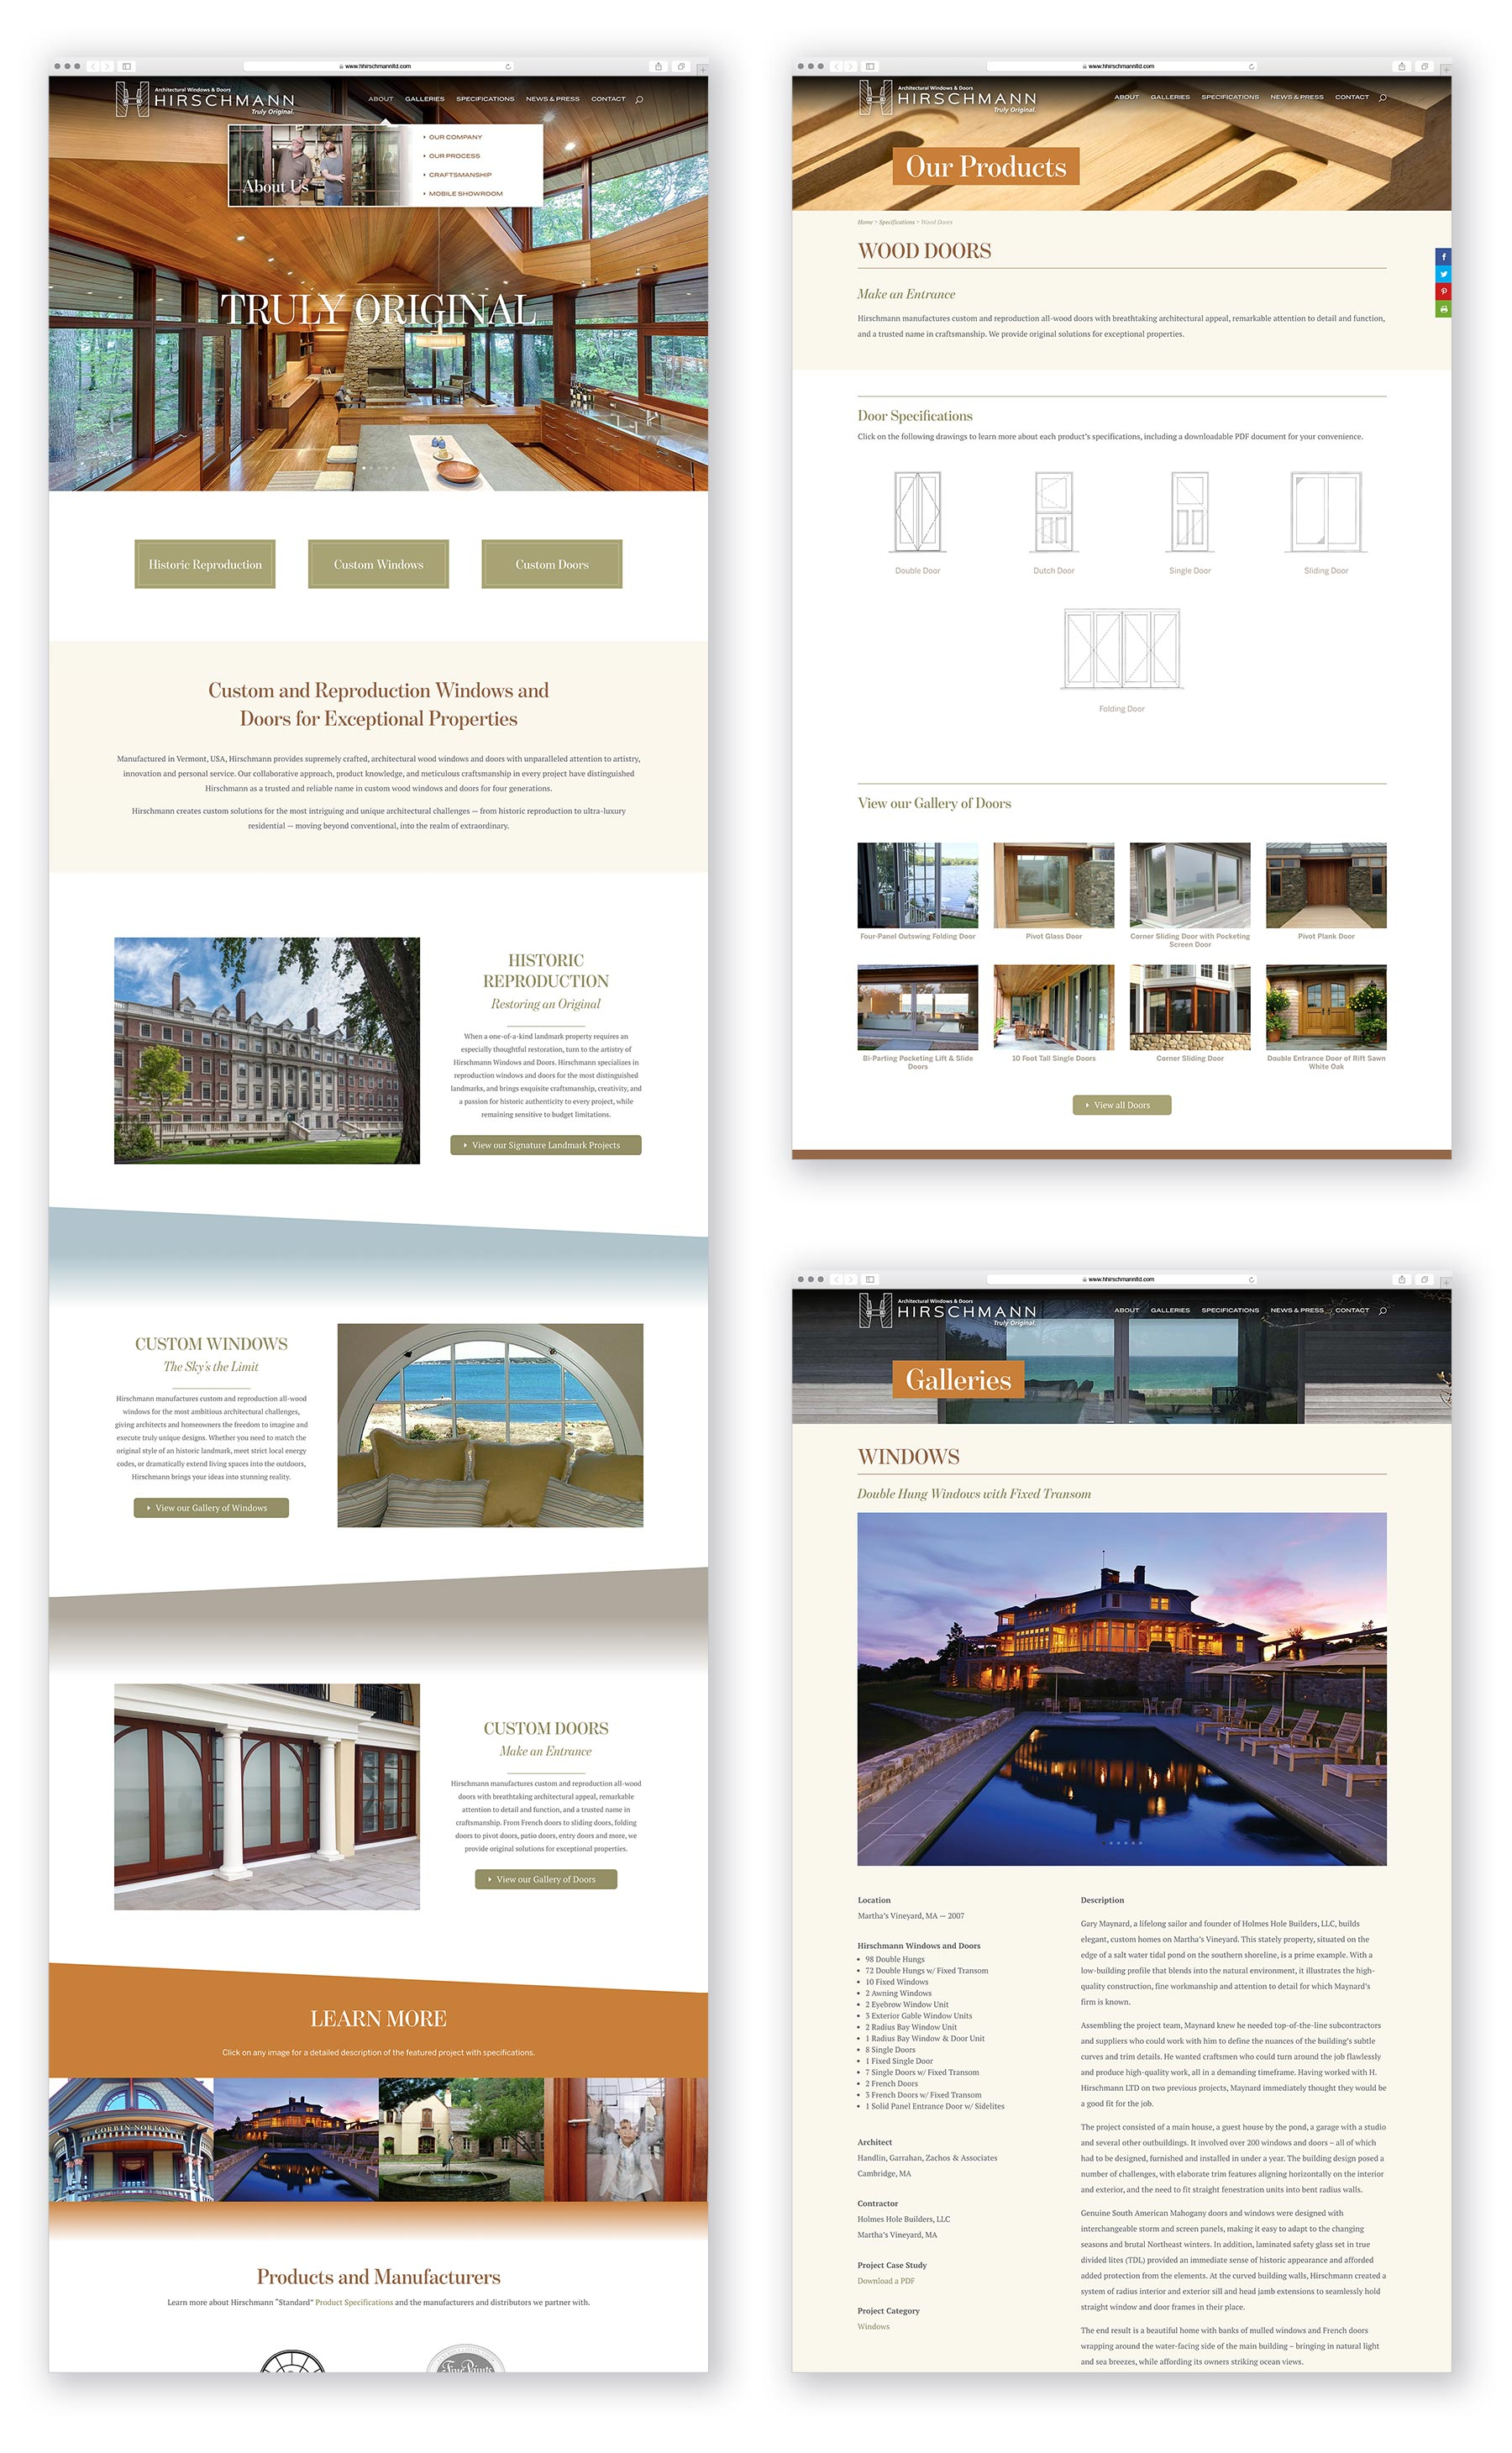 H. Hirschmann LTD - homepage and subpage layout